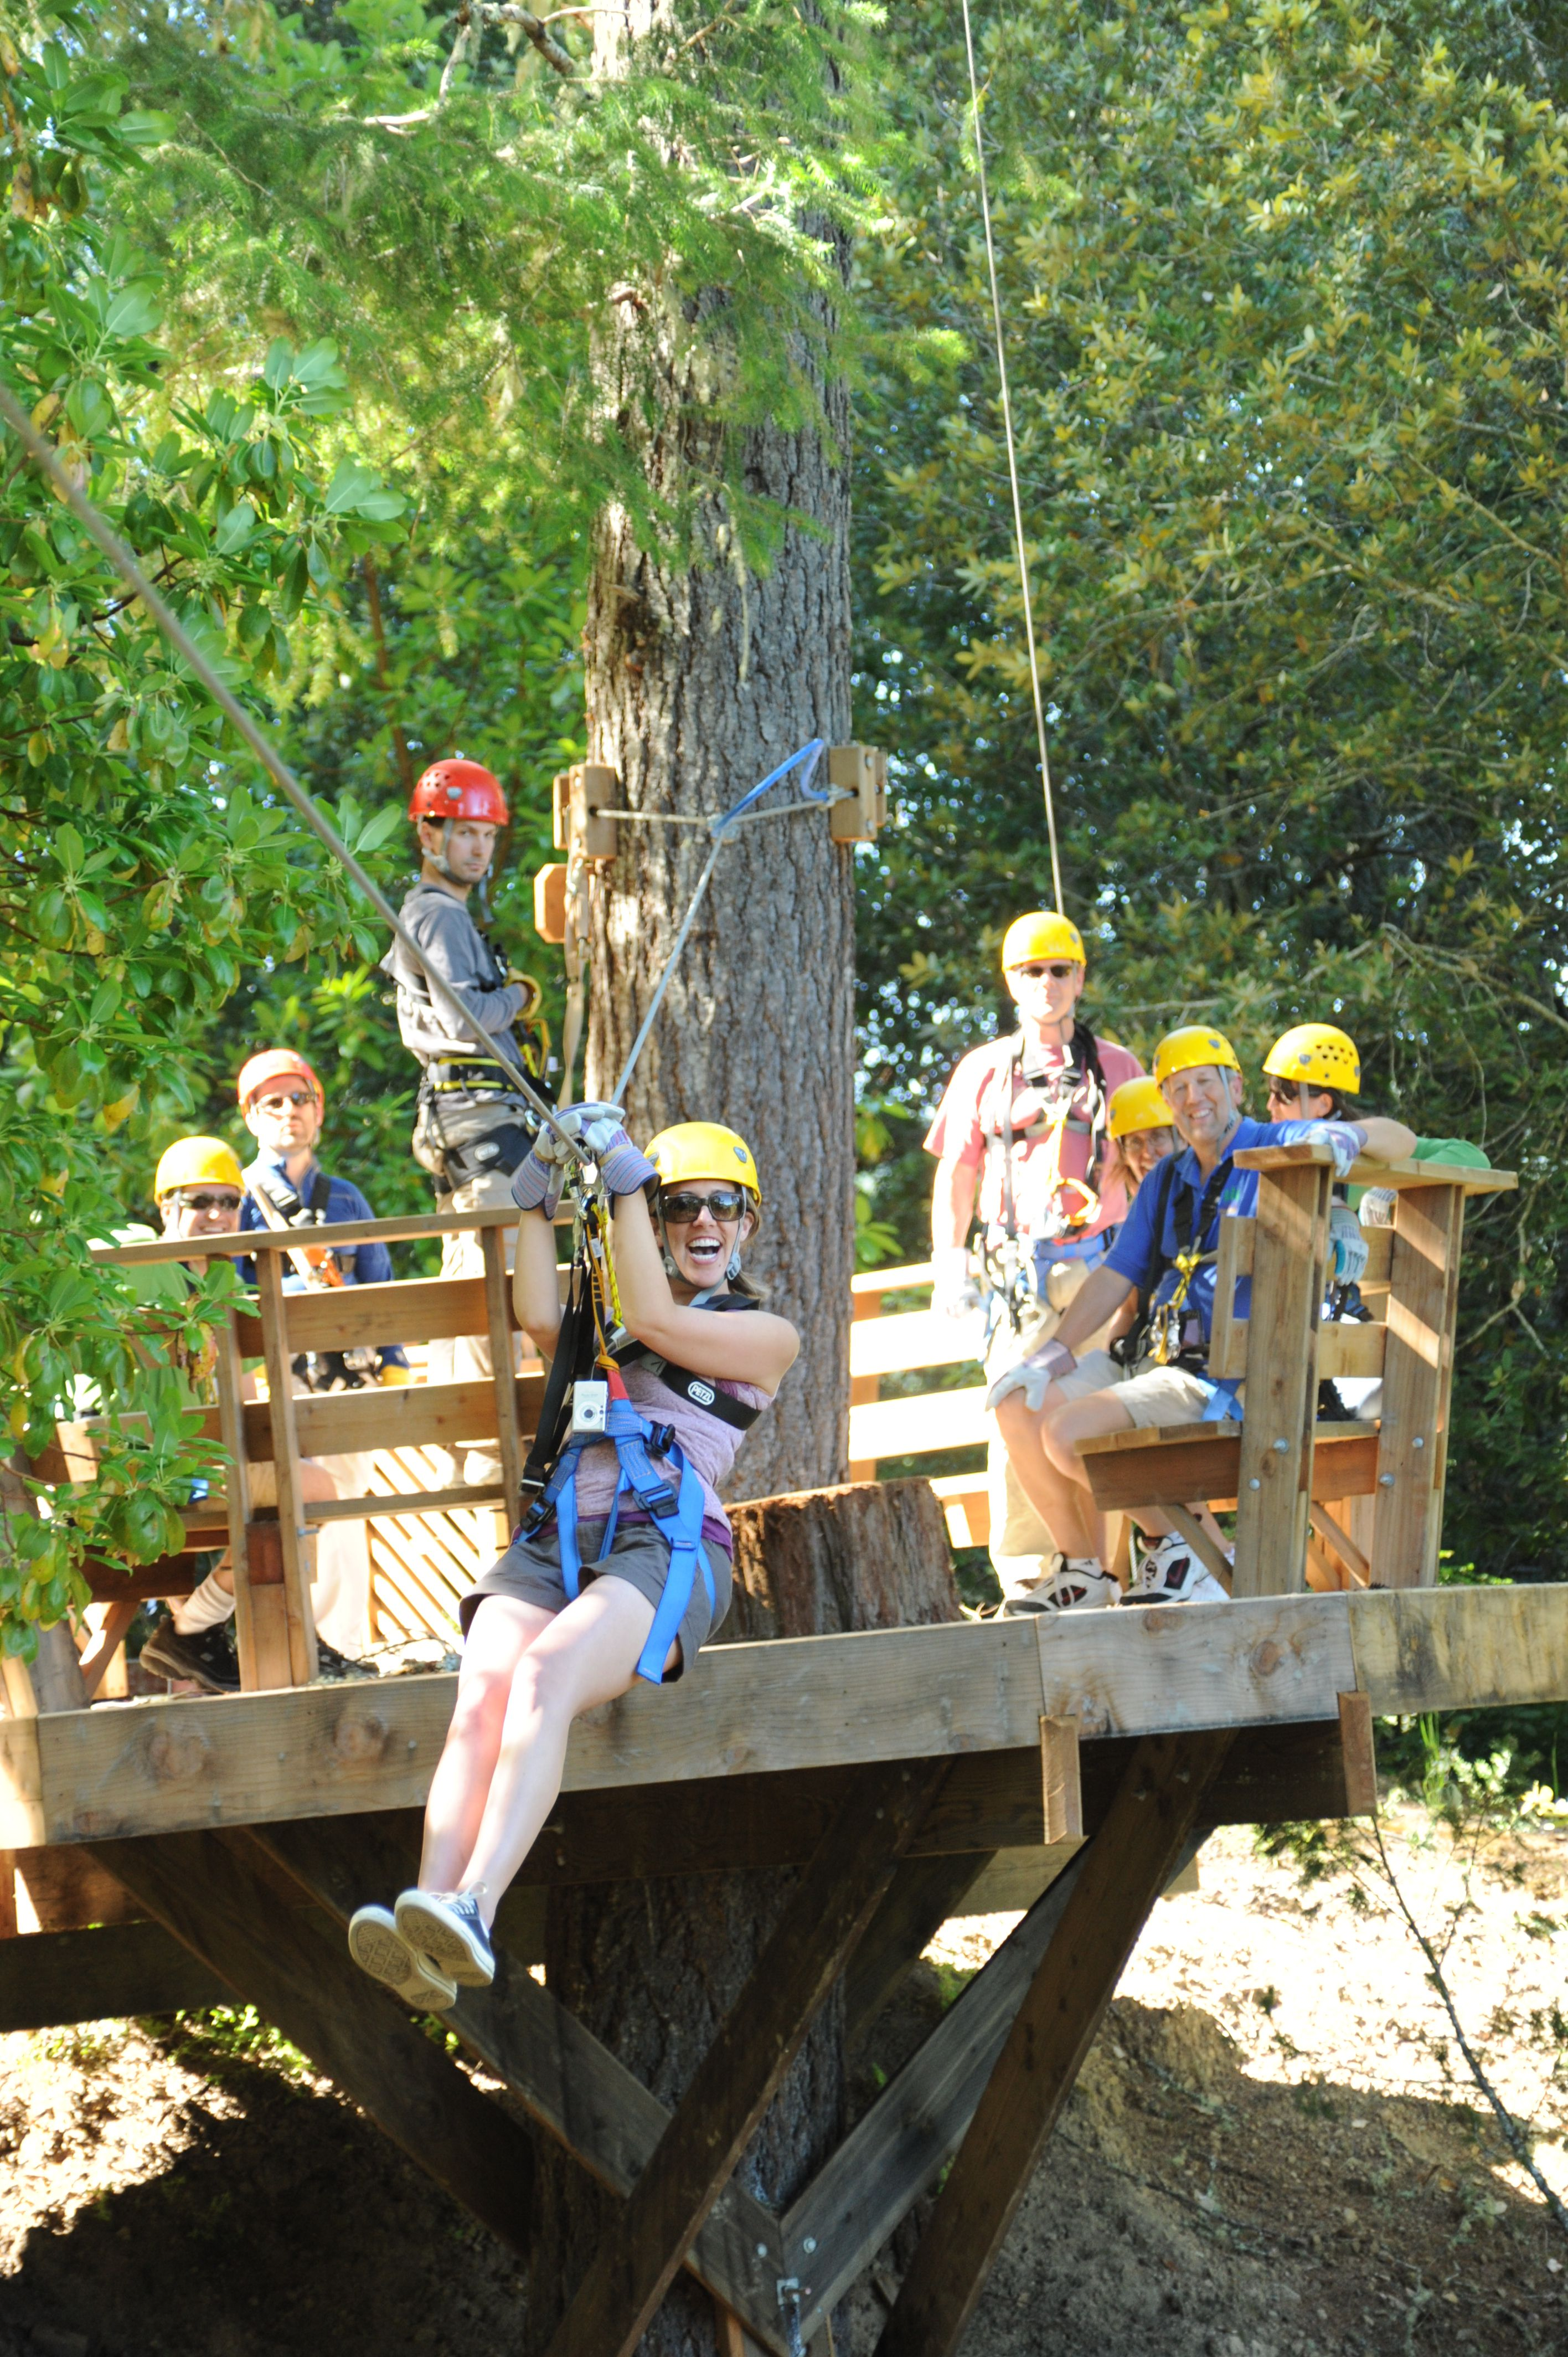 Sonoma Canopy Tours is a great teambuilding activity! & Sonoma Canopy Tours is a great teambuilding activity! | Sonoma ...